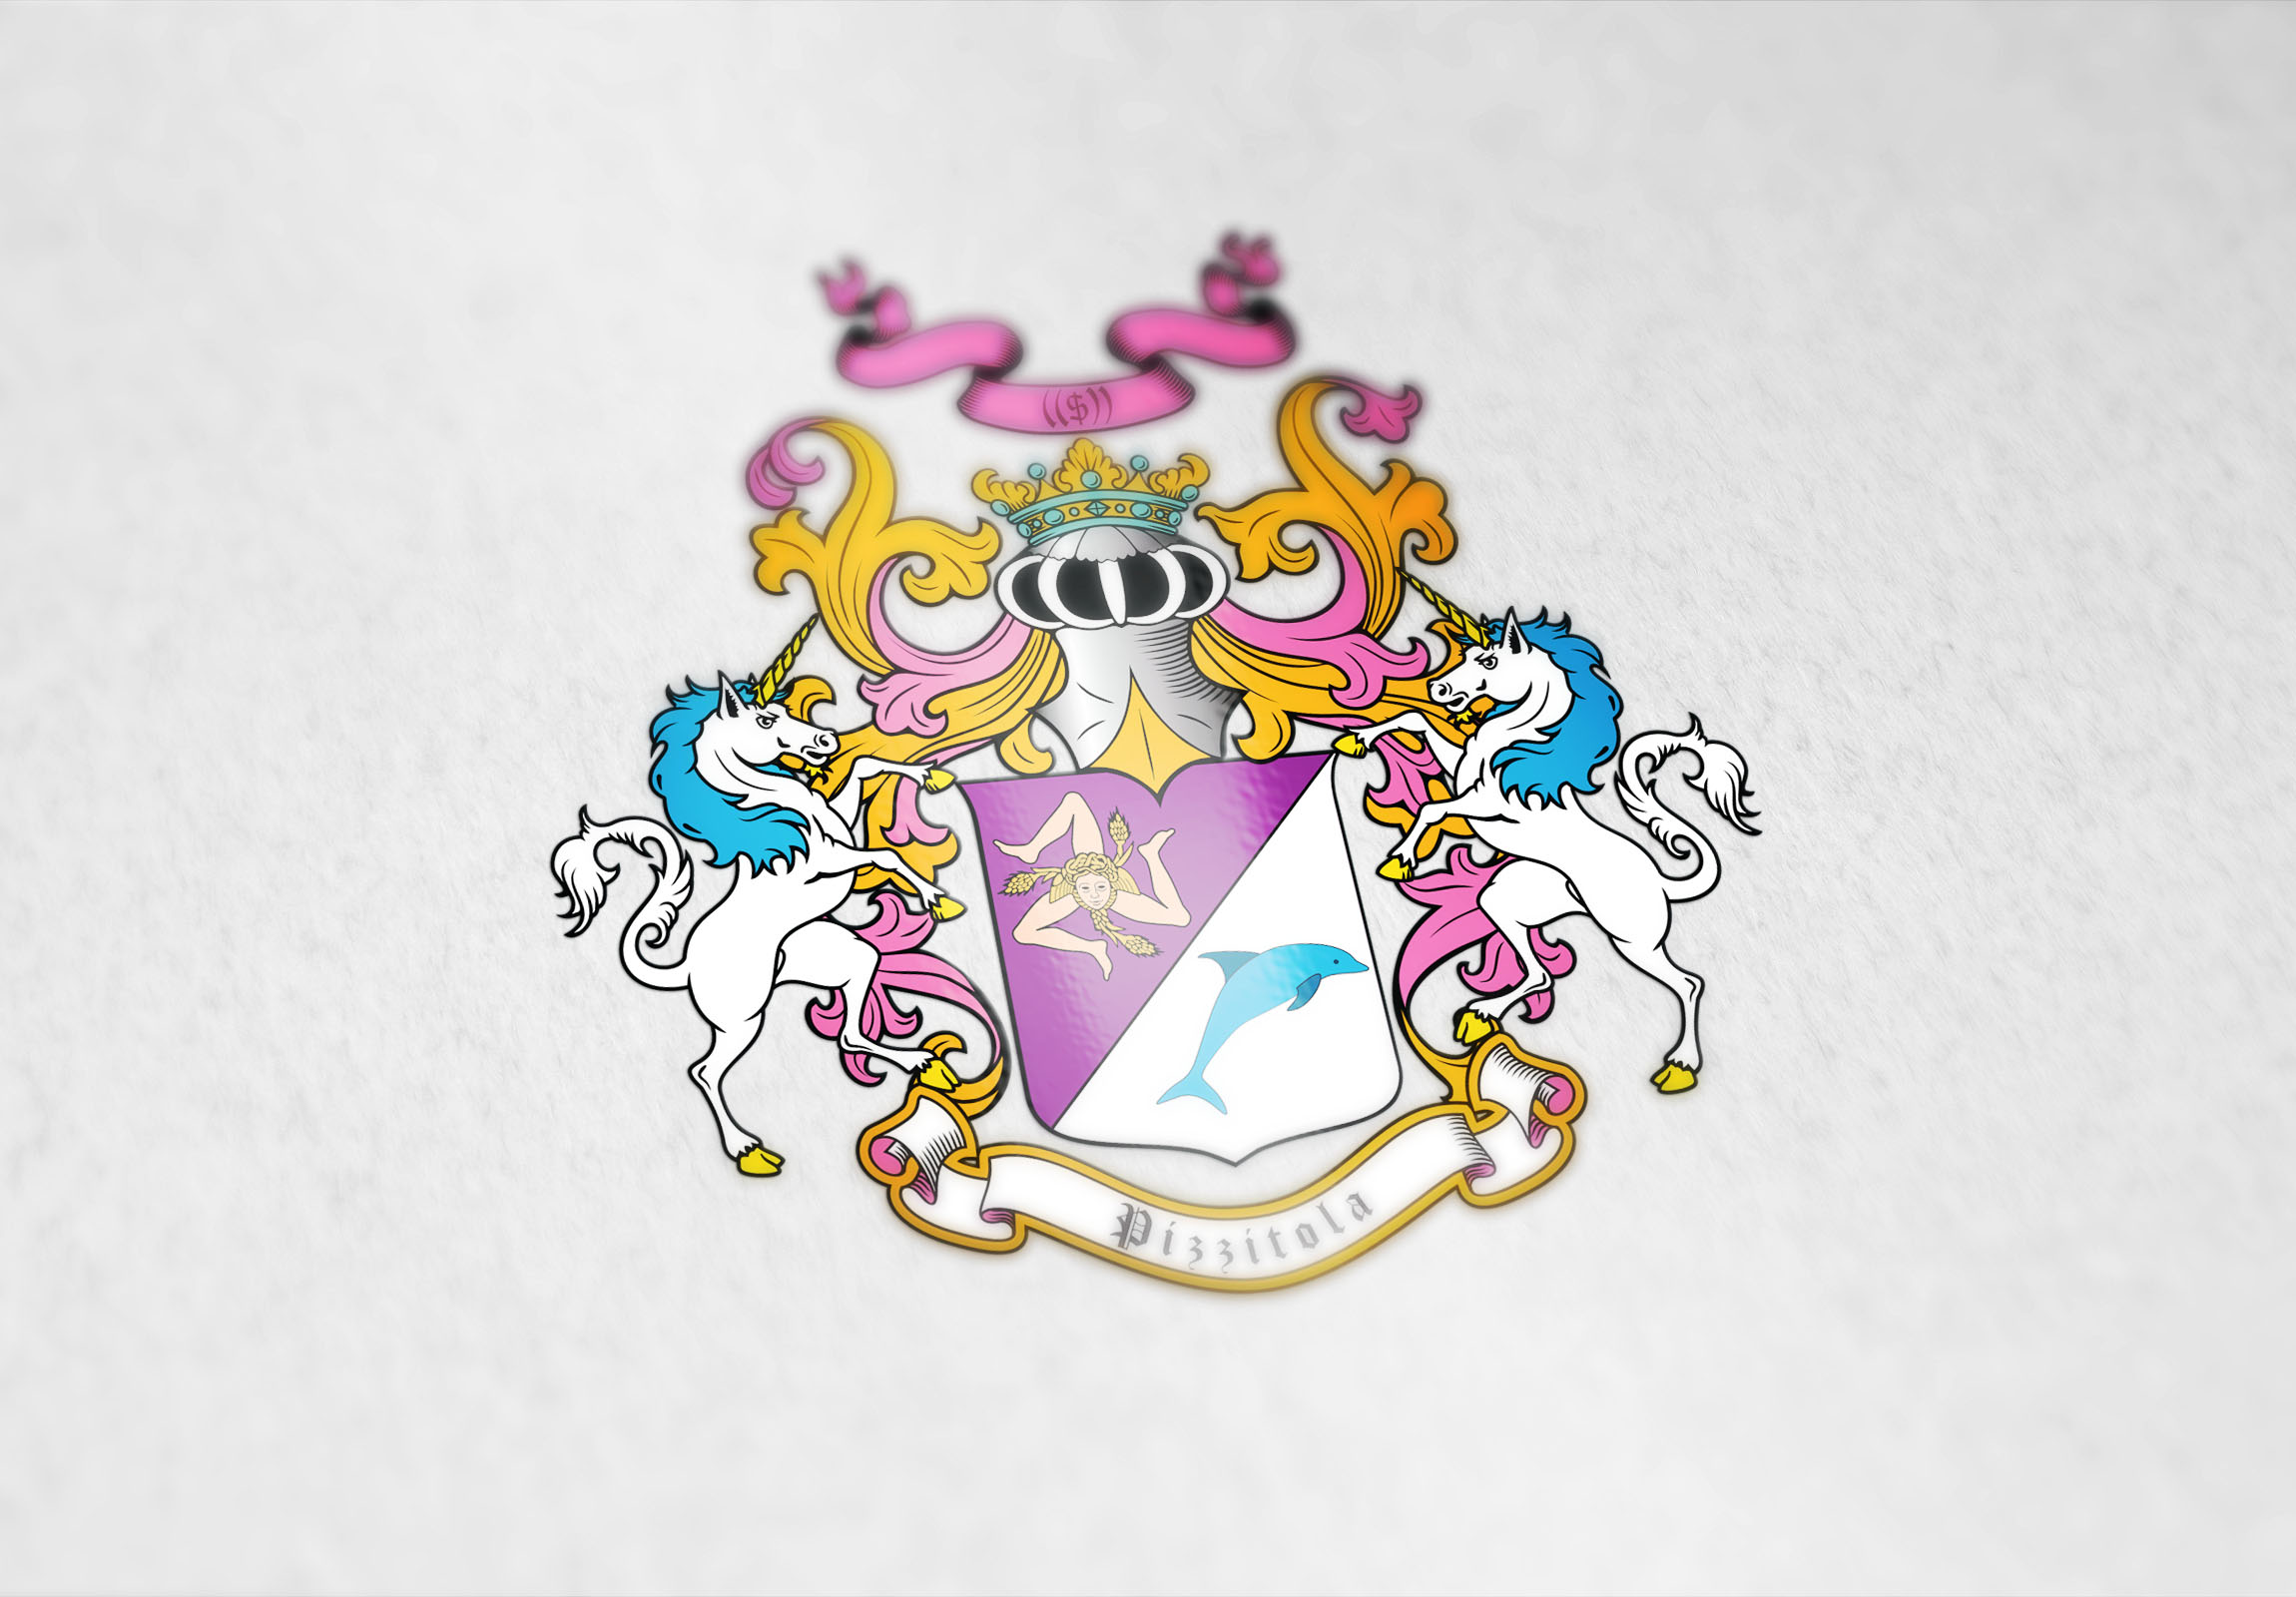 Coat of arms designed for a girl surfer from Italy